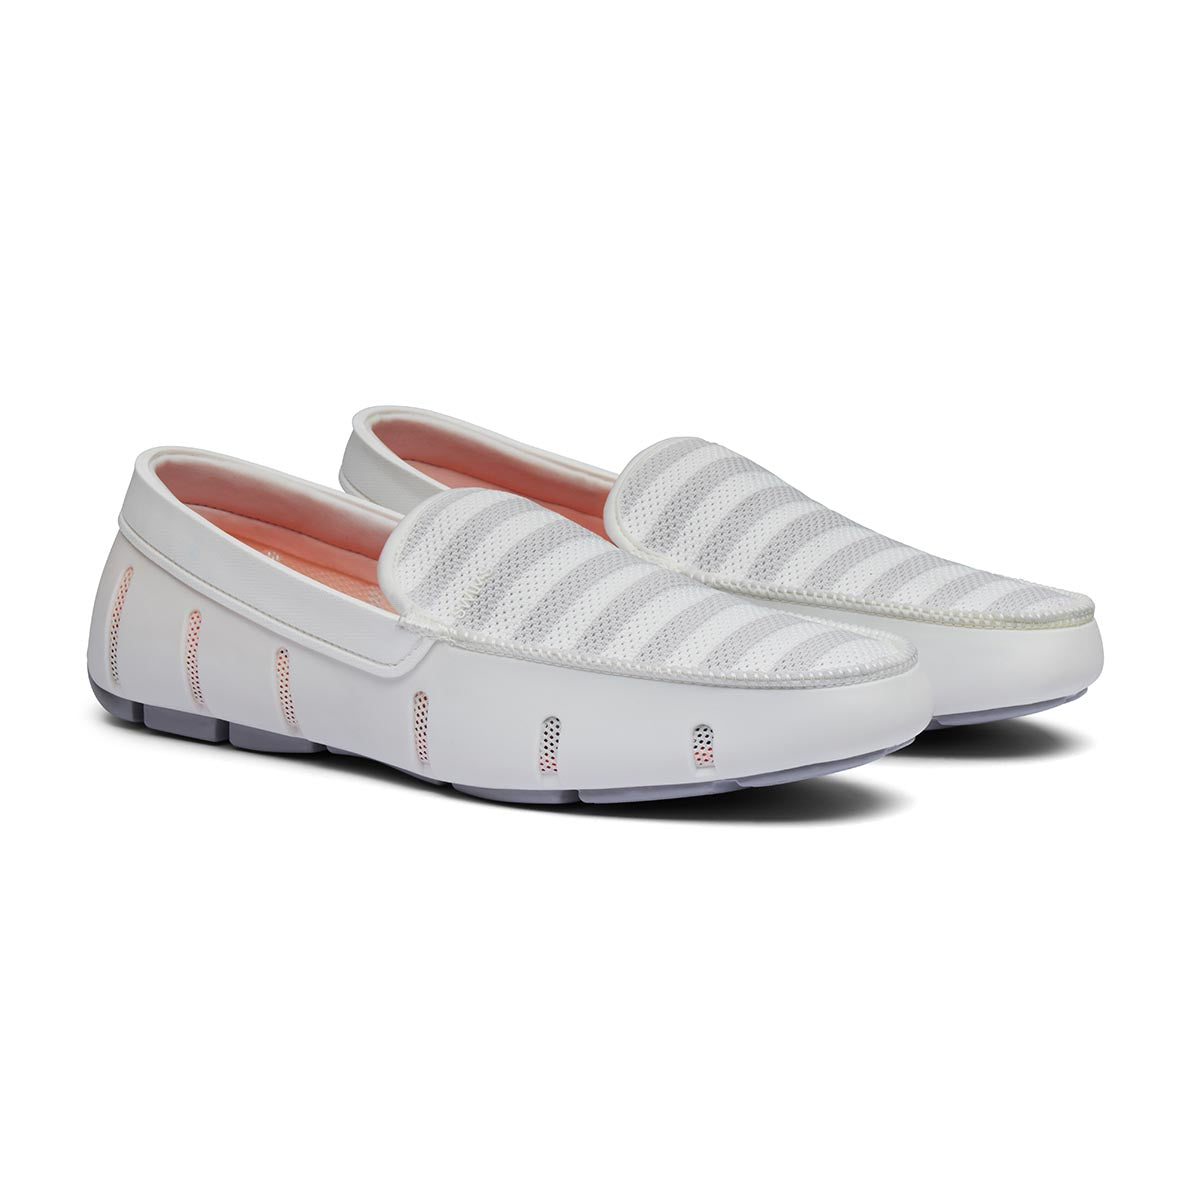 Striped Venetian Loafer - background::white,variant::White/Glacier